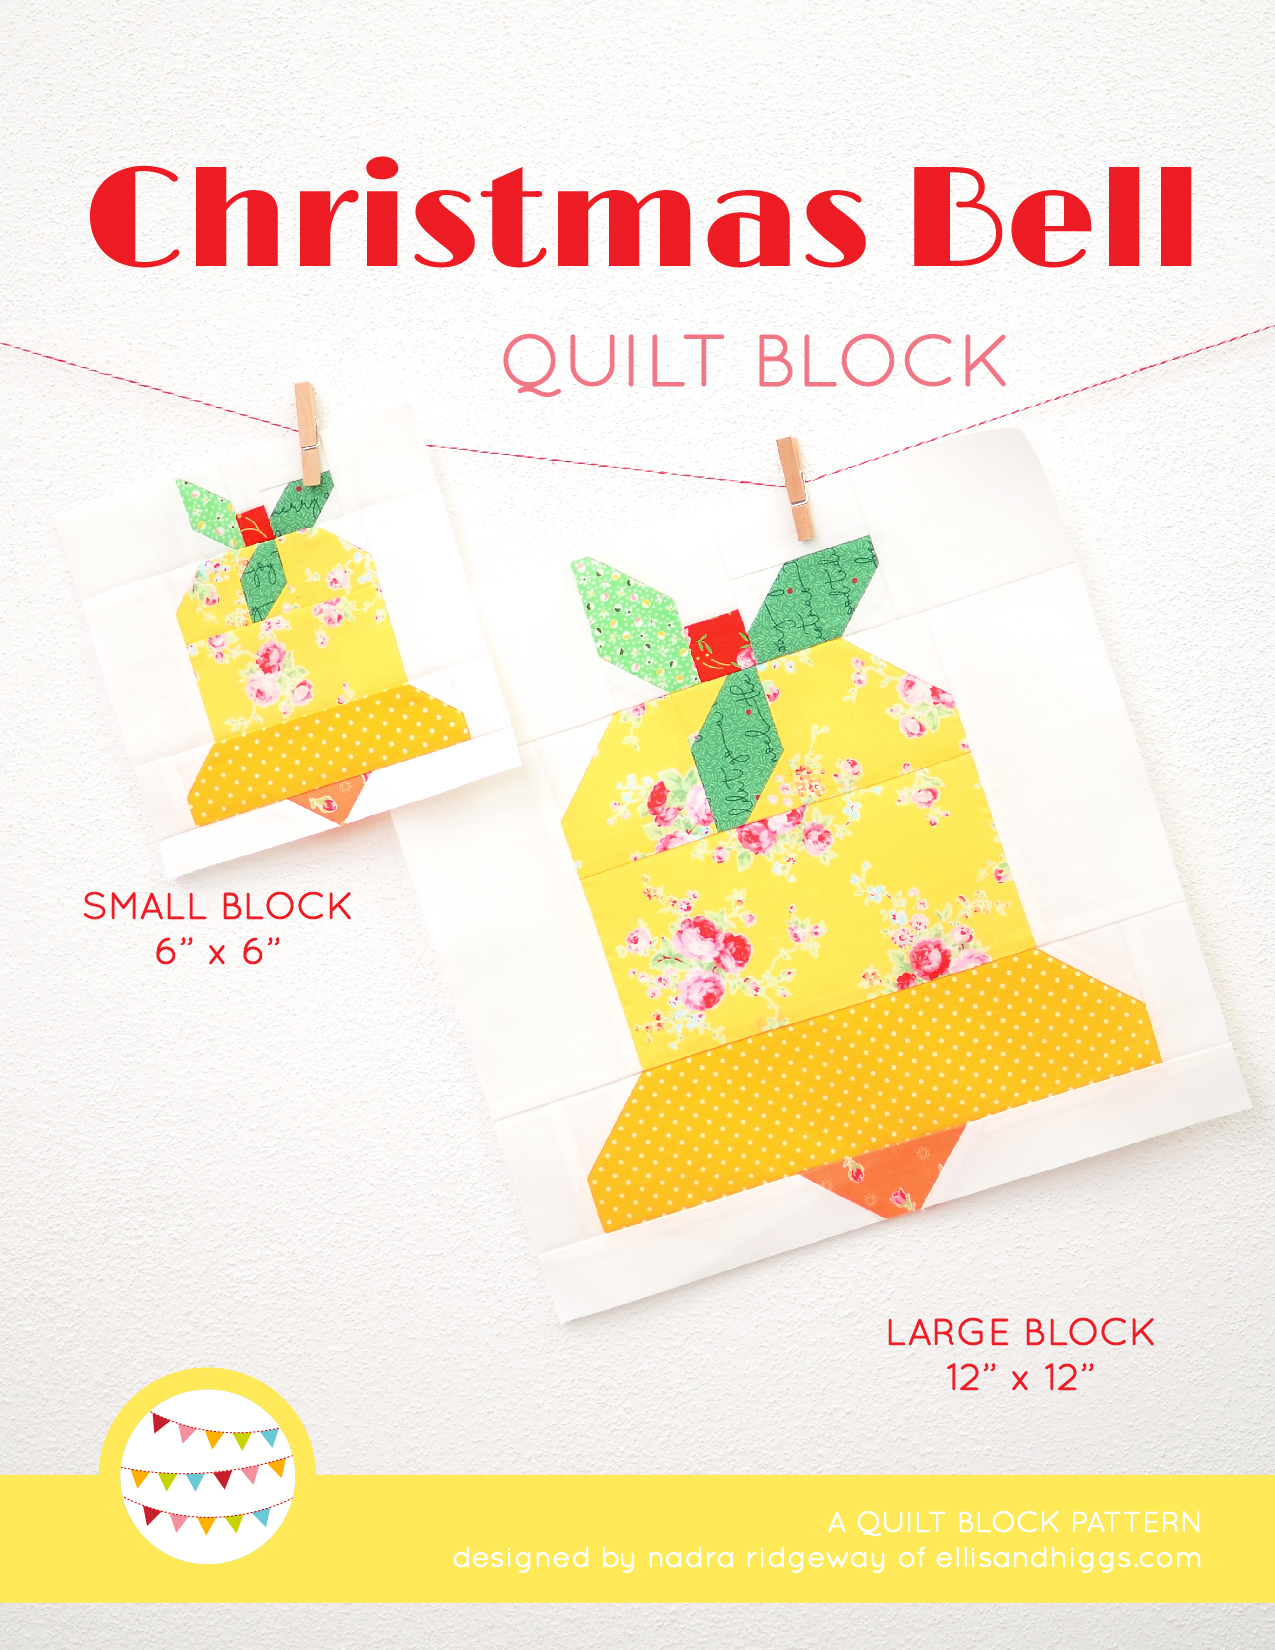 Bell Christmas quilt pattern